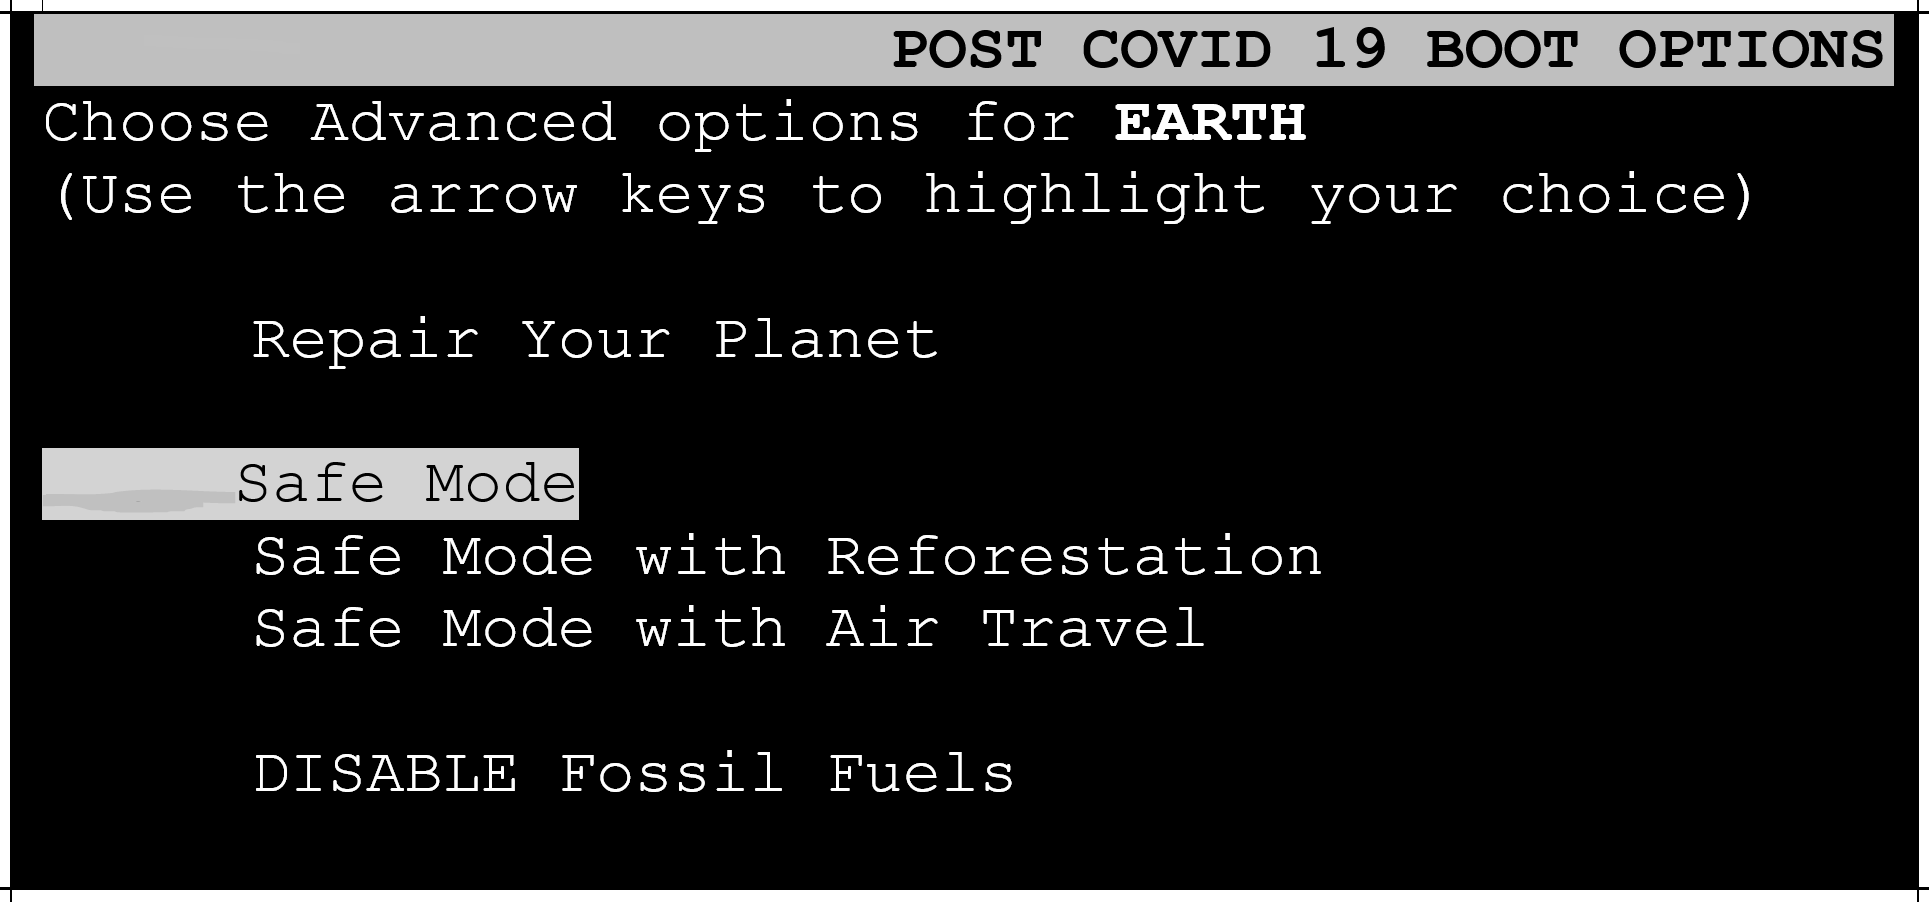 Earth_2020_Do_You_Want_to_Reboot_in_Safe_Mode.png